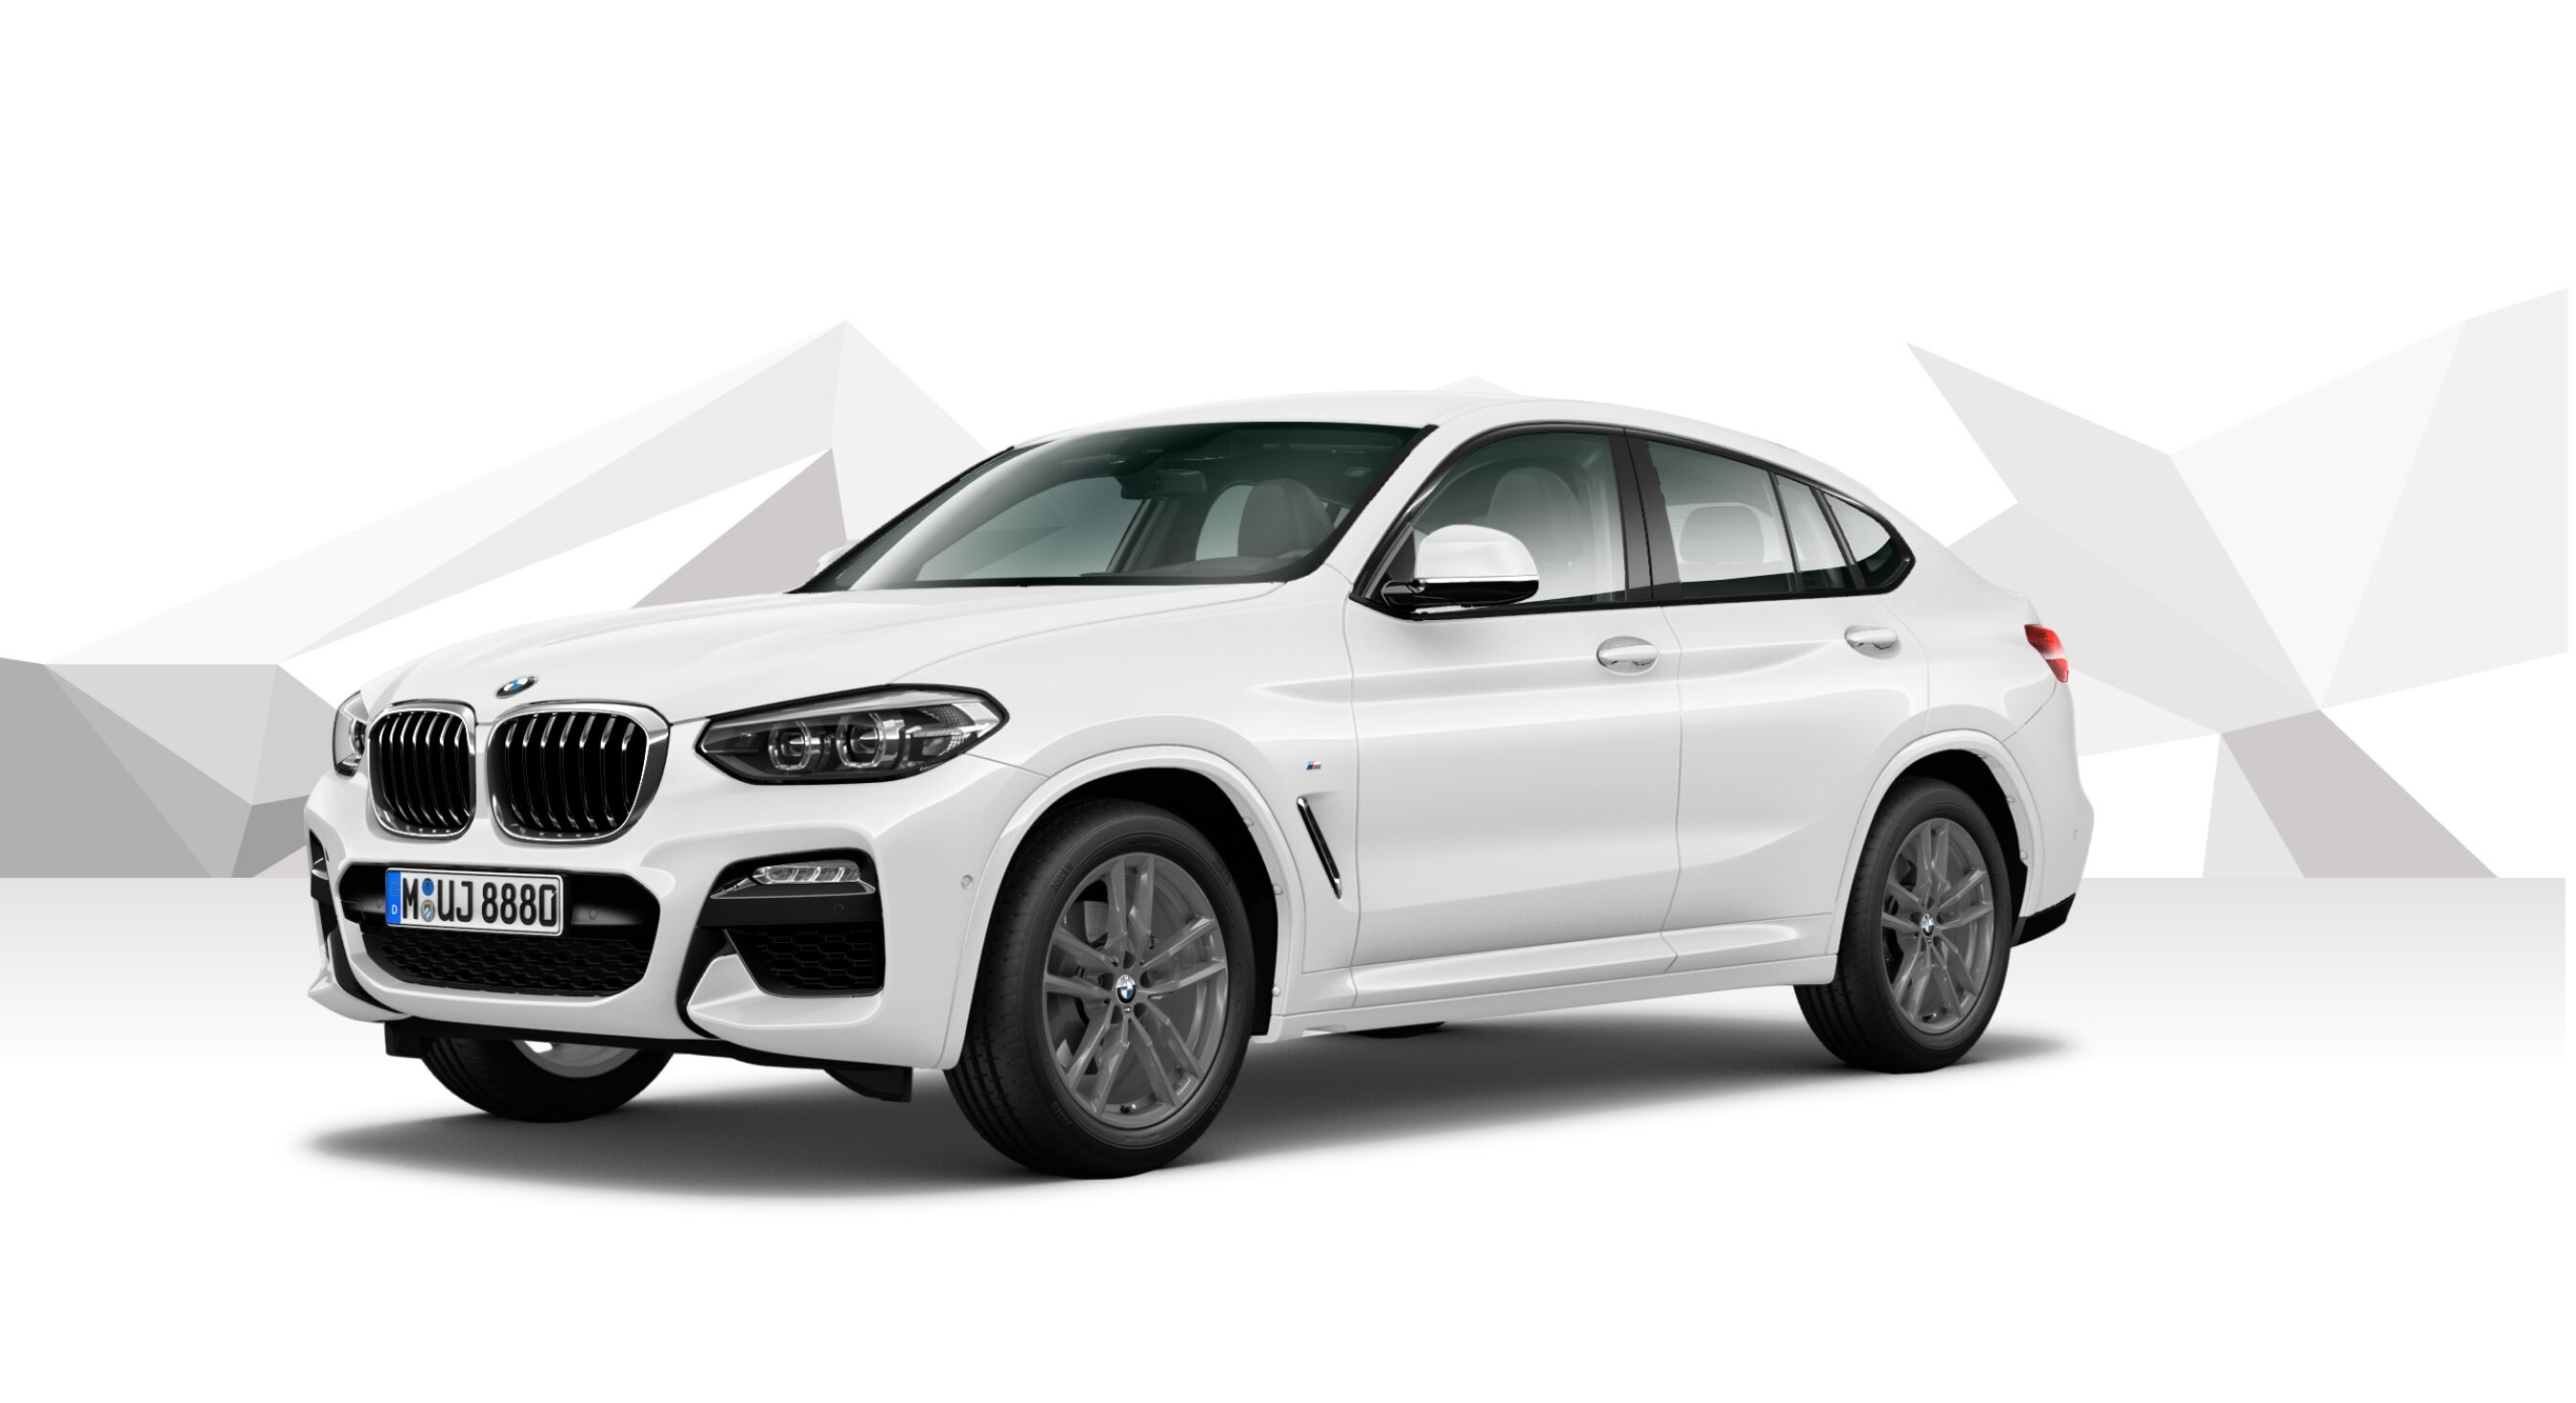 BMW BMW X4 xDrive20d M Sport (Including Optional Technology Pack)